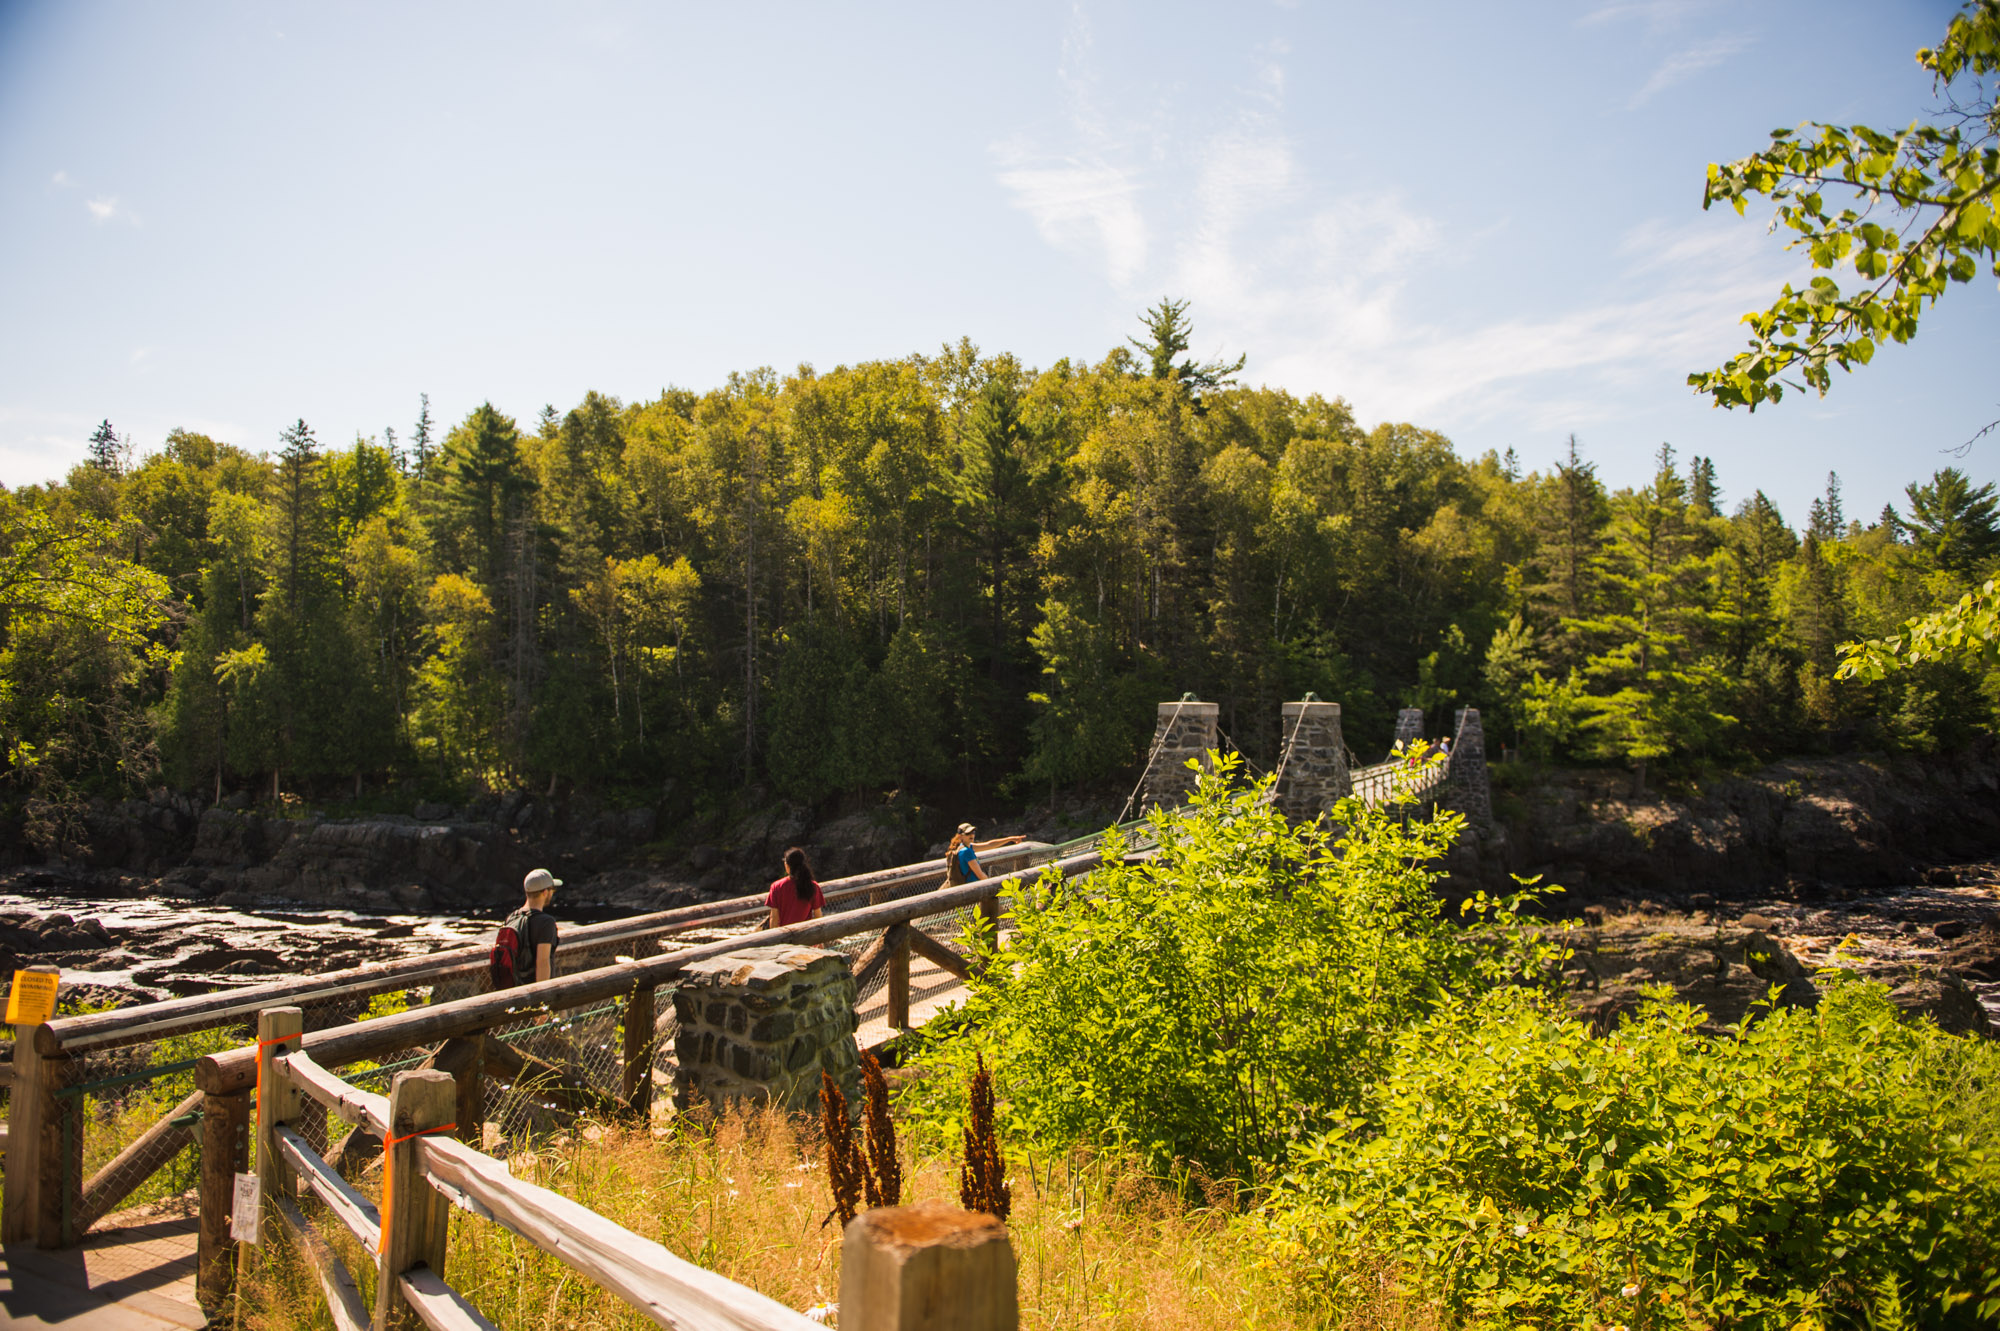 The iconic Swinging Bridge over the St. Louis River at Jay Cooke State Park. Image courtesy of Alex Messenger Photography.